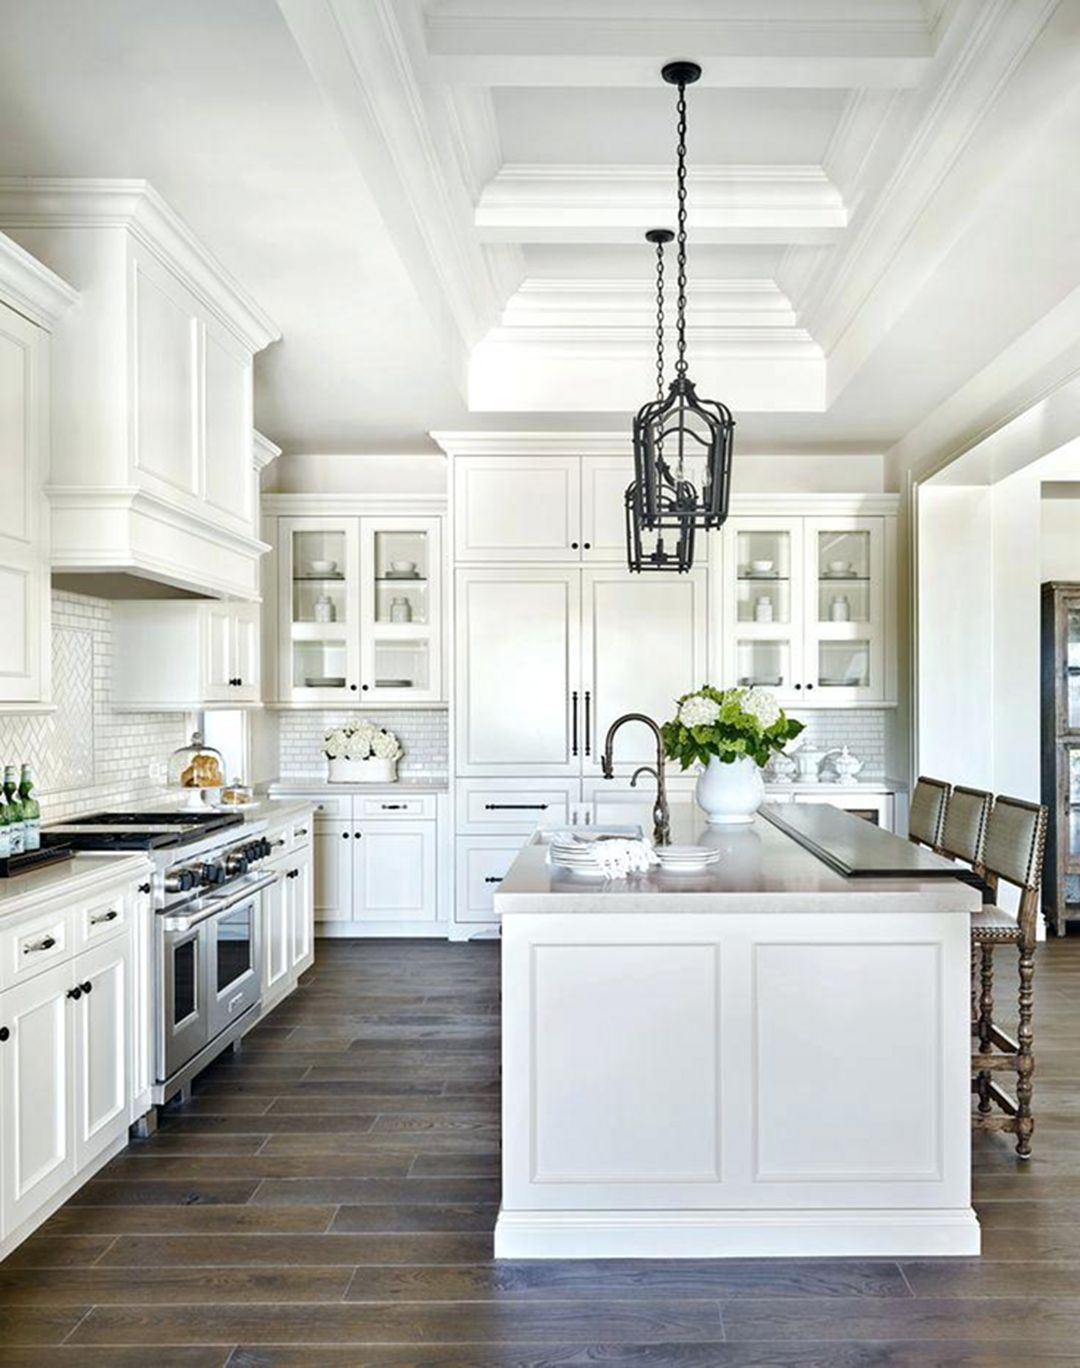 extraordinary kitchen ceiling designs | 33 Extraordinary All White Small Kitchen Ideas To Look ...